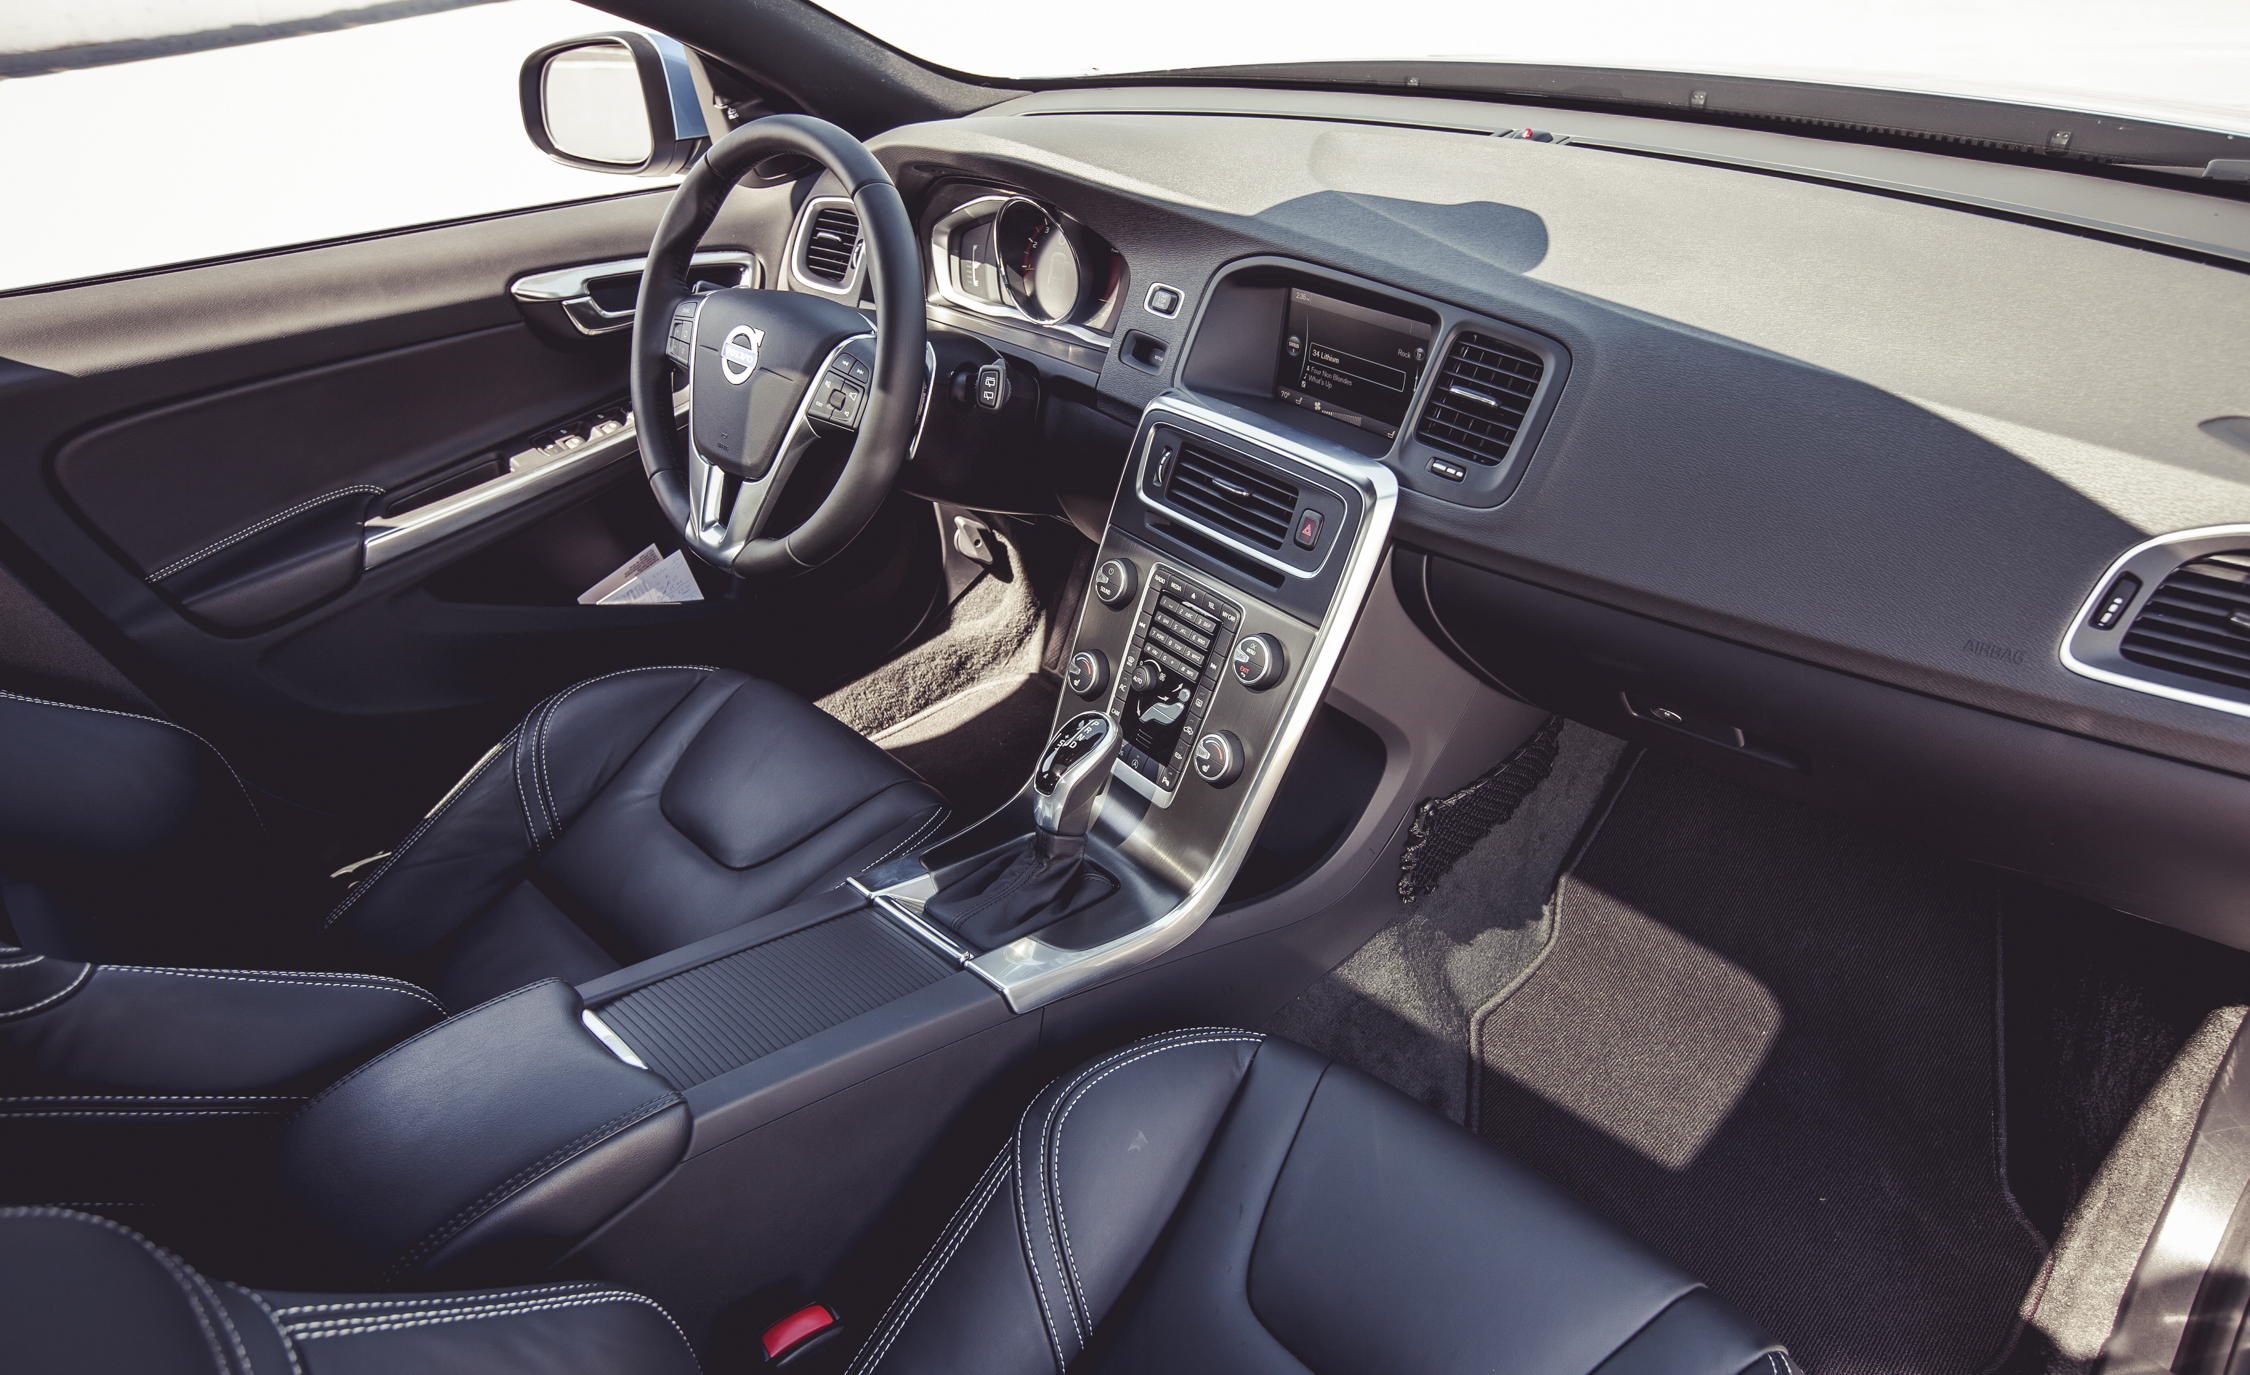 2015 Volvo V60 Interior Dashboard